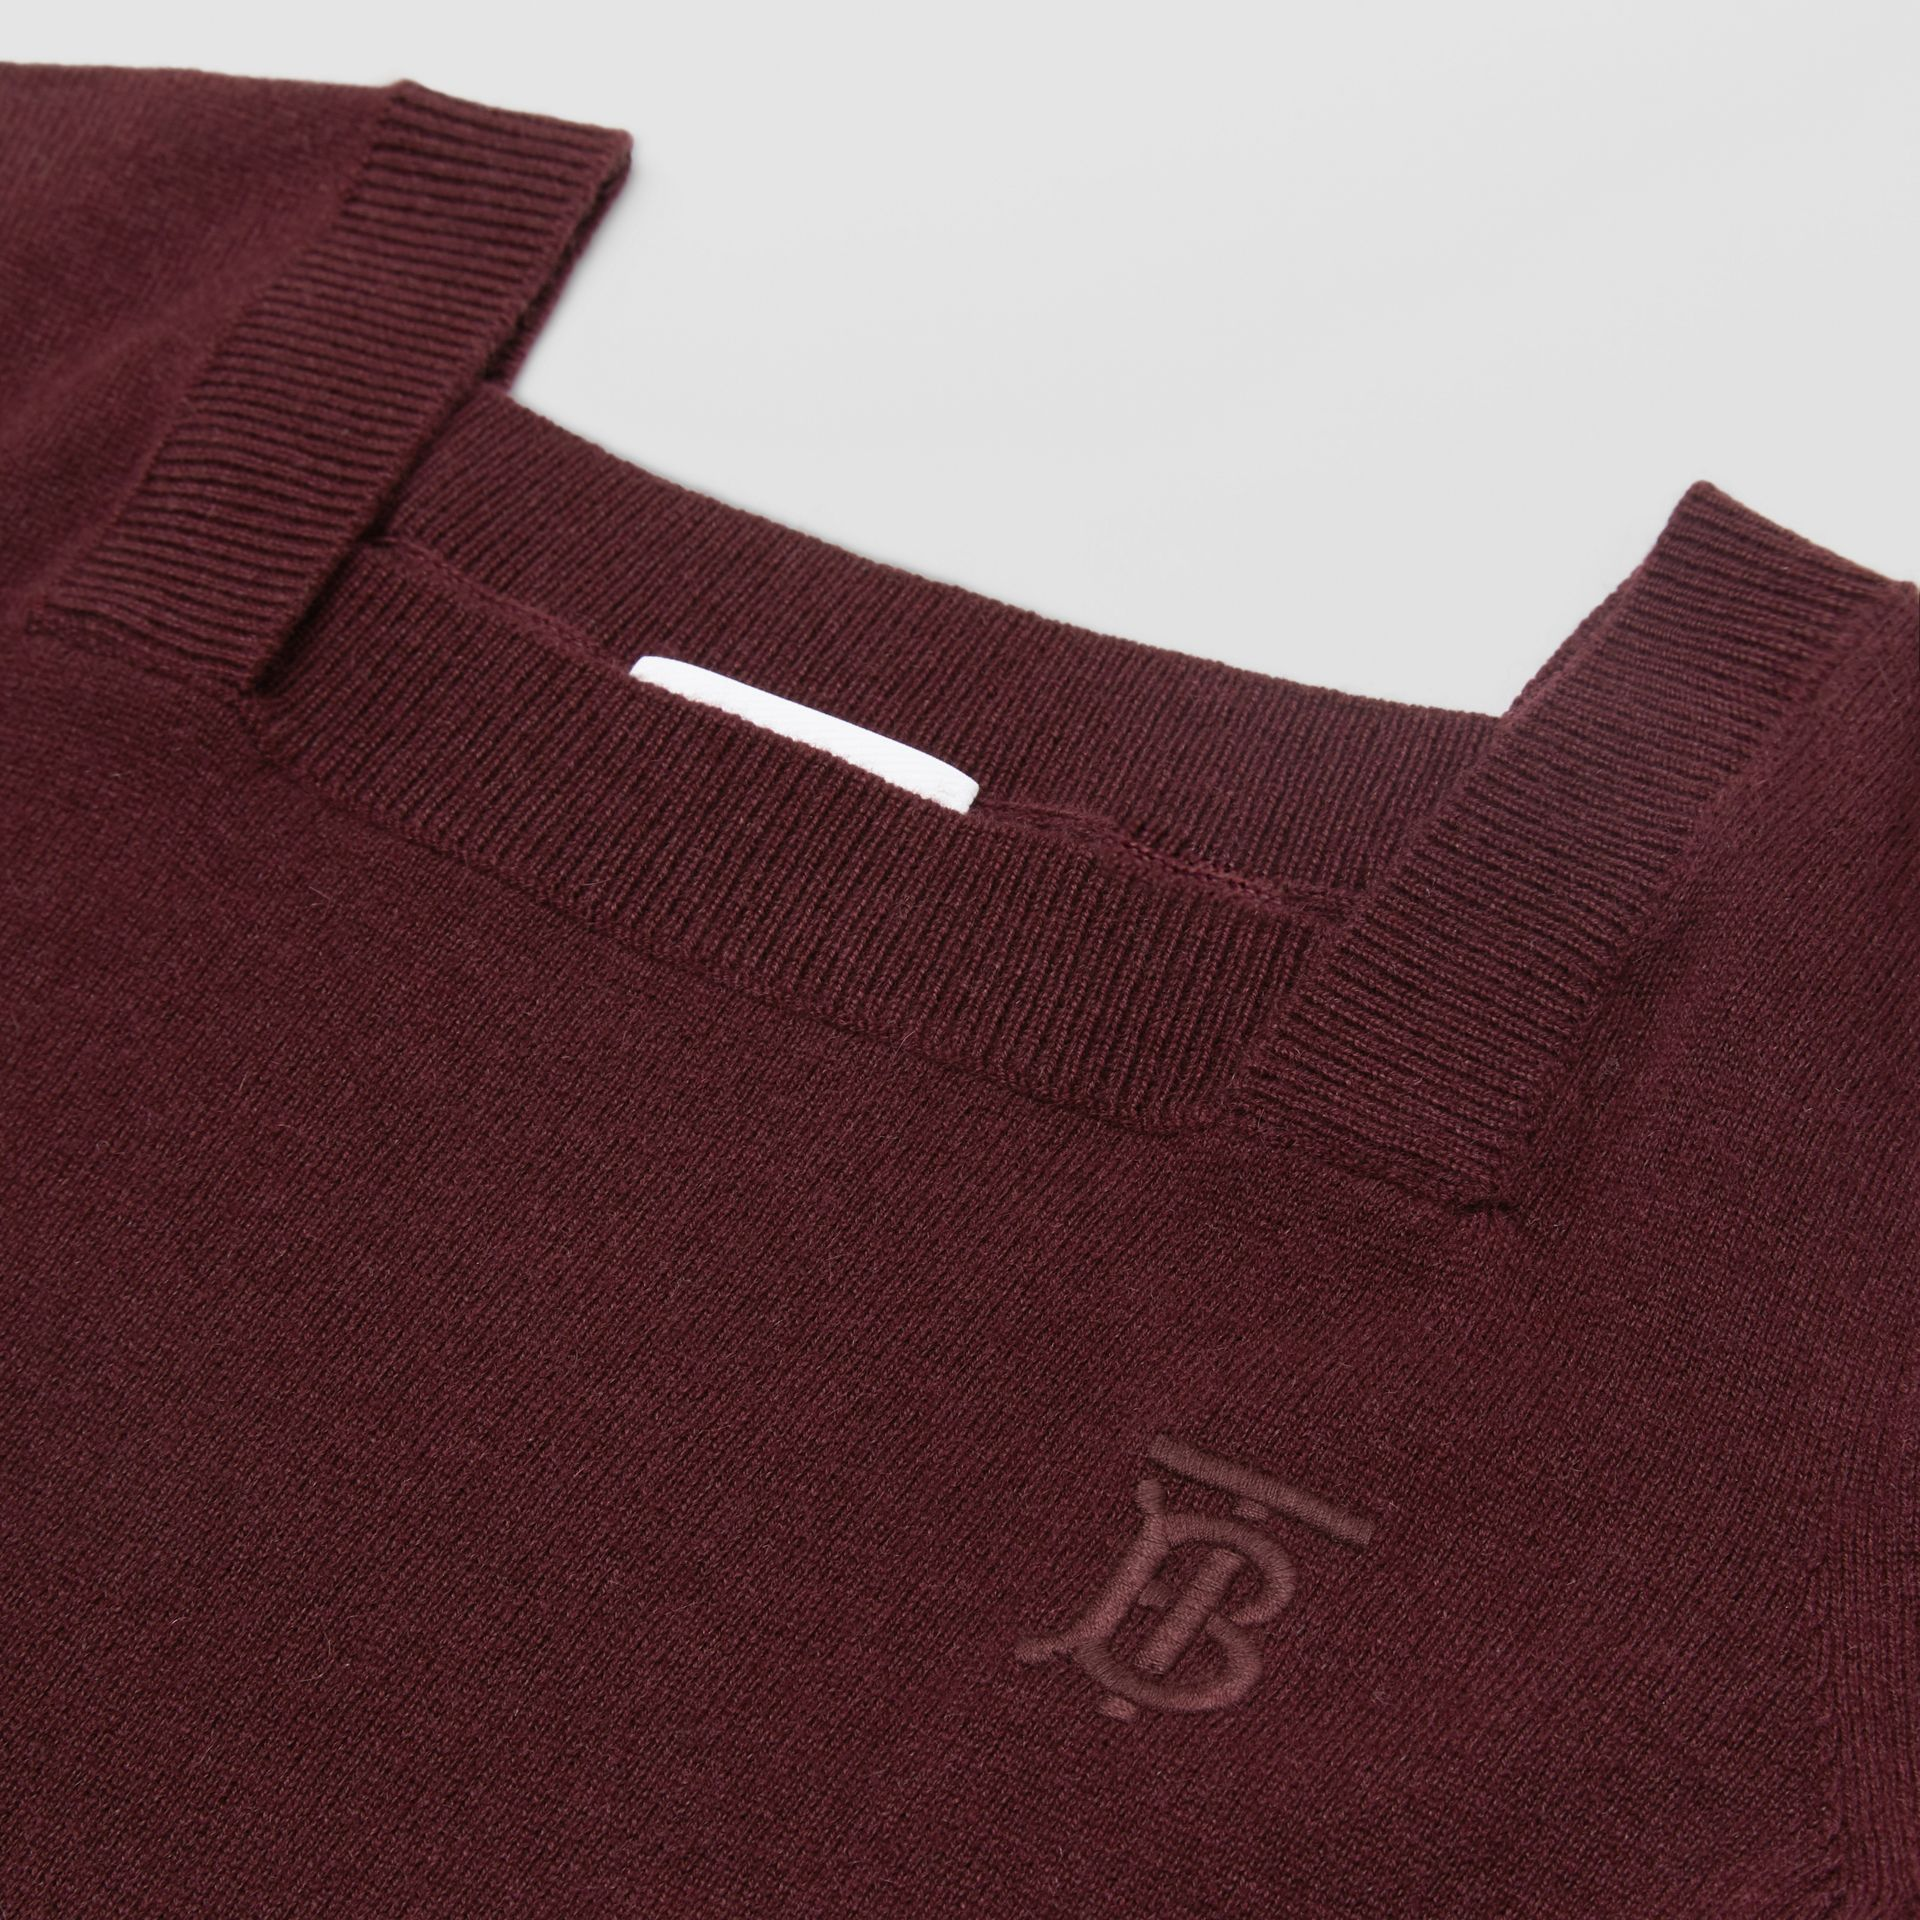 Monogram Motif Cashmere Sweater Dress in Burgundy | Burberry - gallery image 1